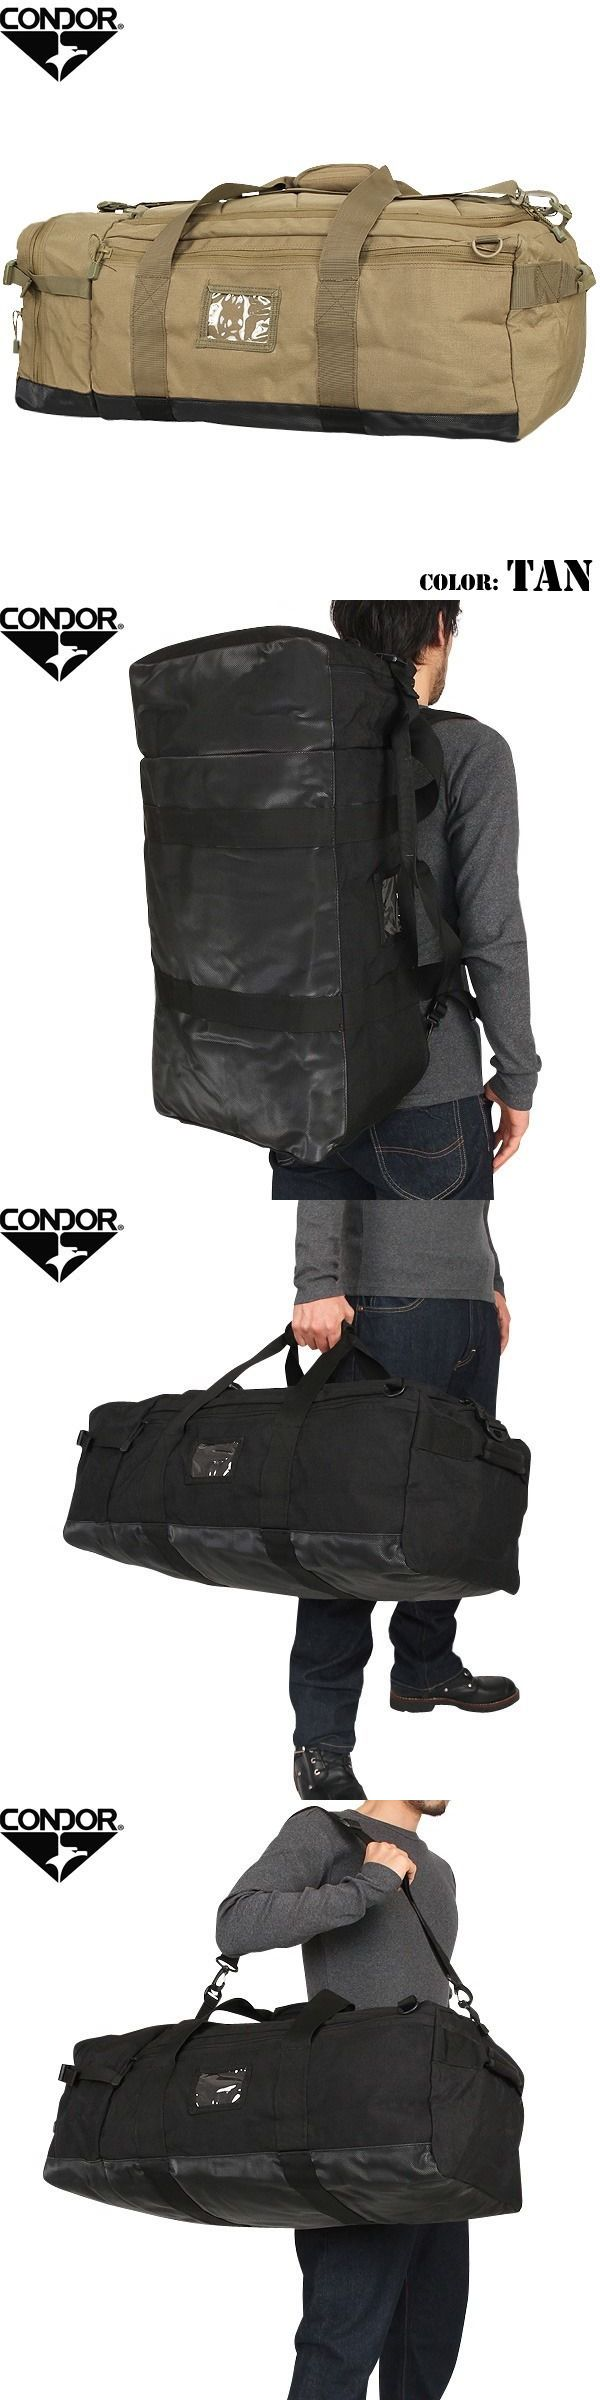 Hunting Bags and Packs 52503: Condor 161 Tan Colossus Tactical Duffle Bag Backpack Shoulder Bag -> BUY IT NOW ONLY: $59.55 on eBay!